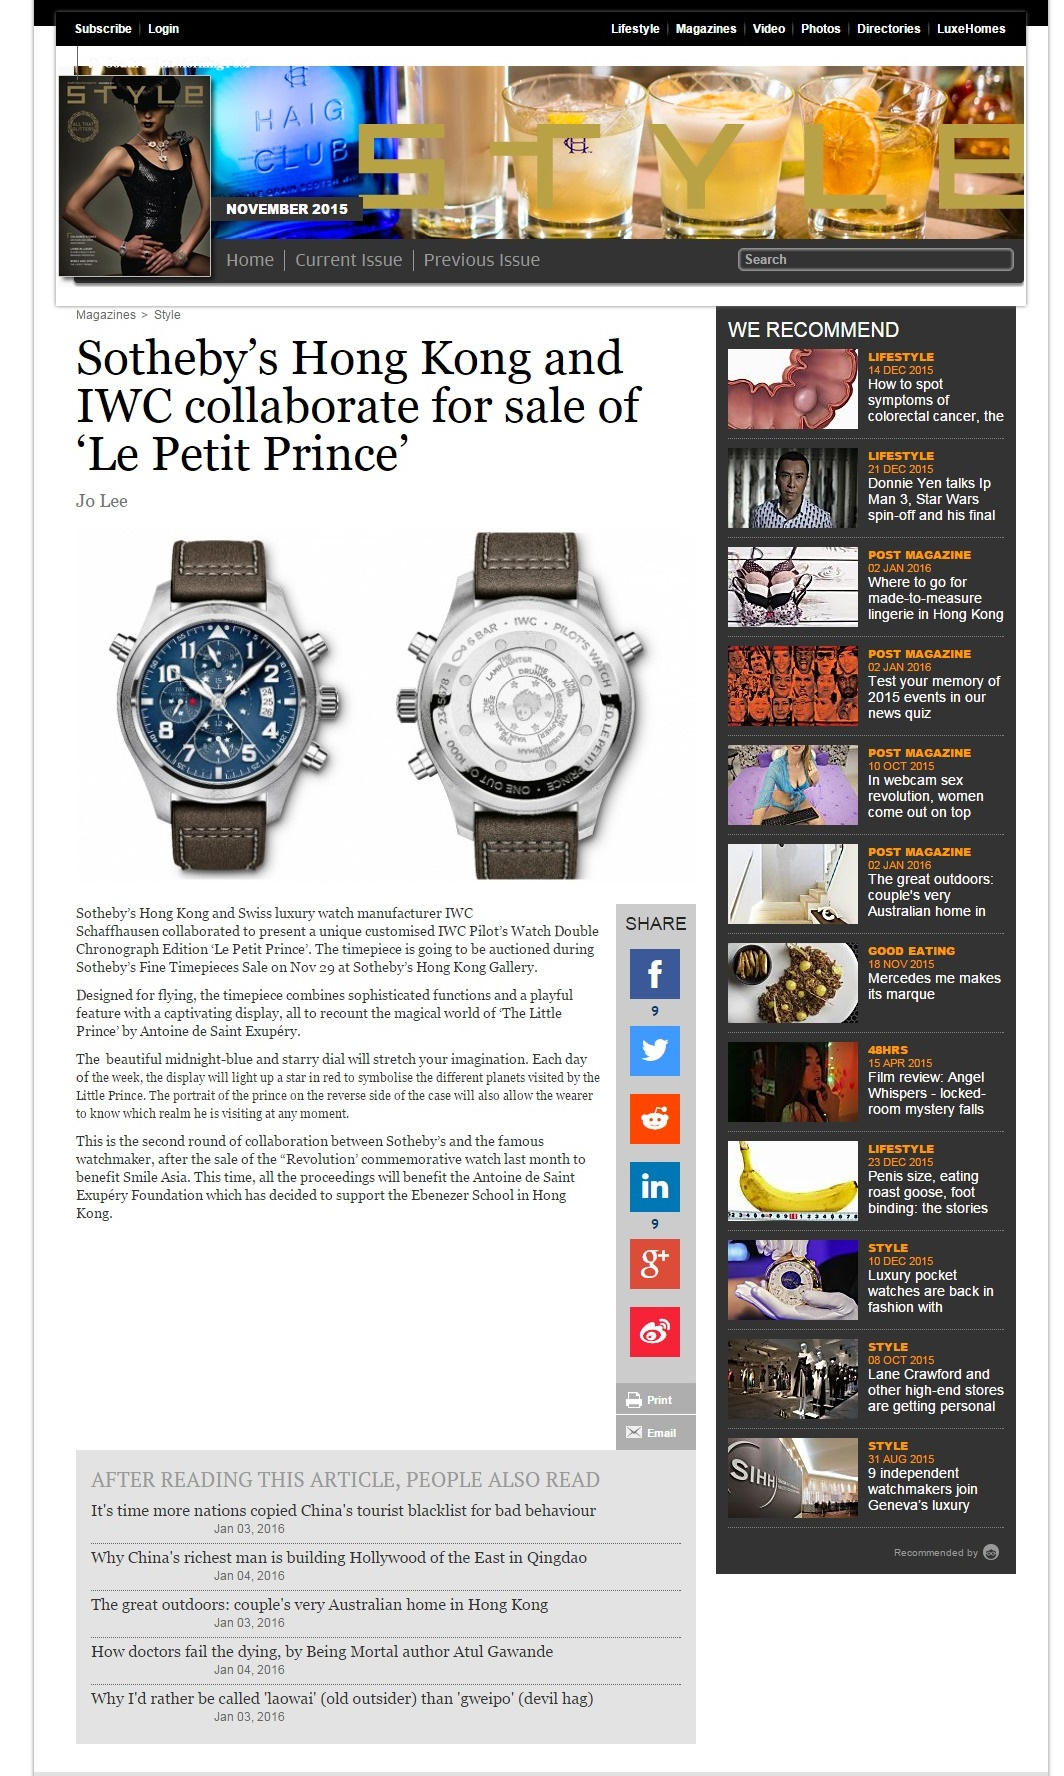 FireShot Capture - Sotheby's Hong Kong and IWC collaborate_ - http___www.scmp.com_magazines_style_.jpg